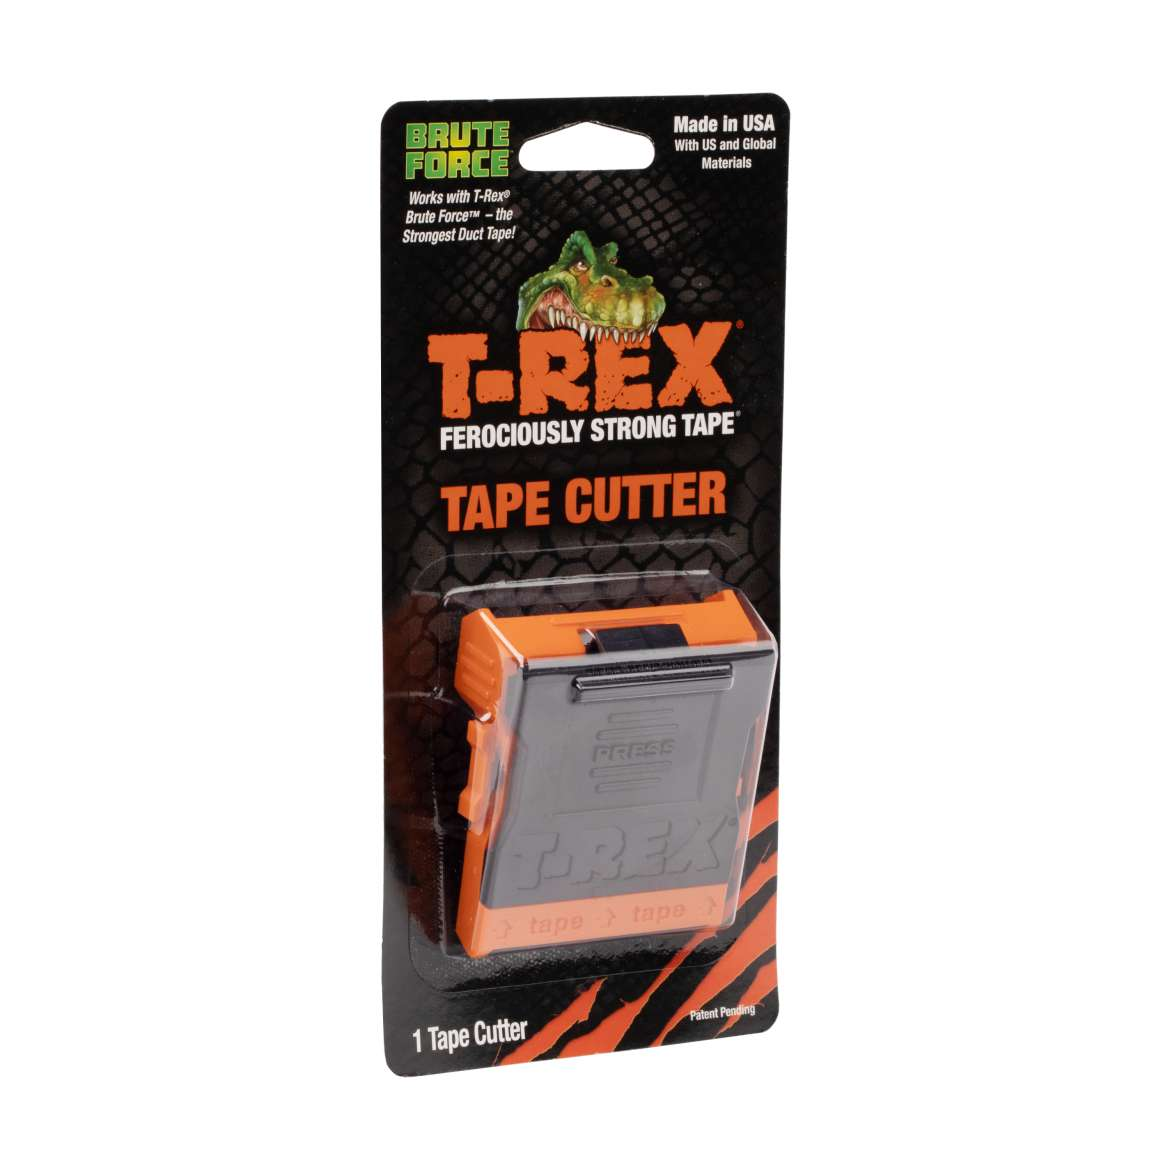 tape cutter cut any type of tape t rex tape. Black Bedroom Furniture Sets. Home Design Ideas